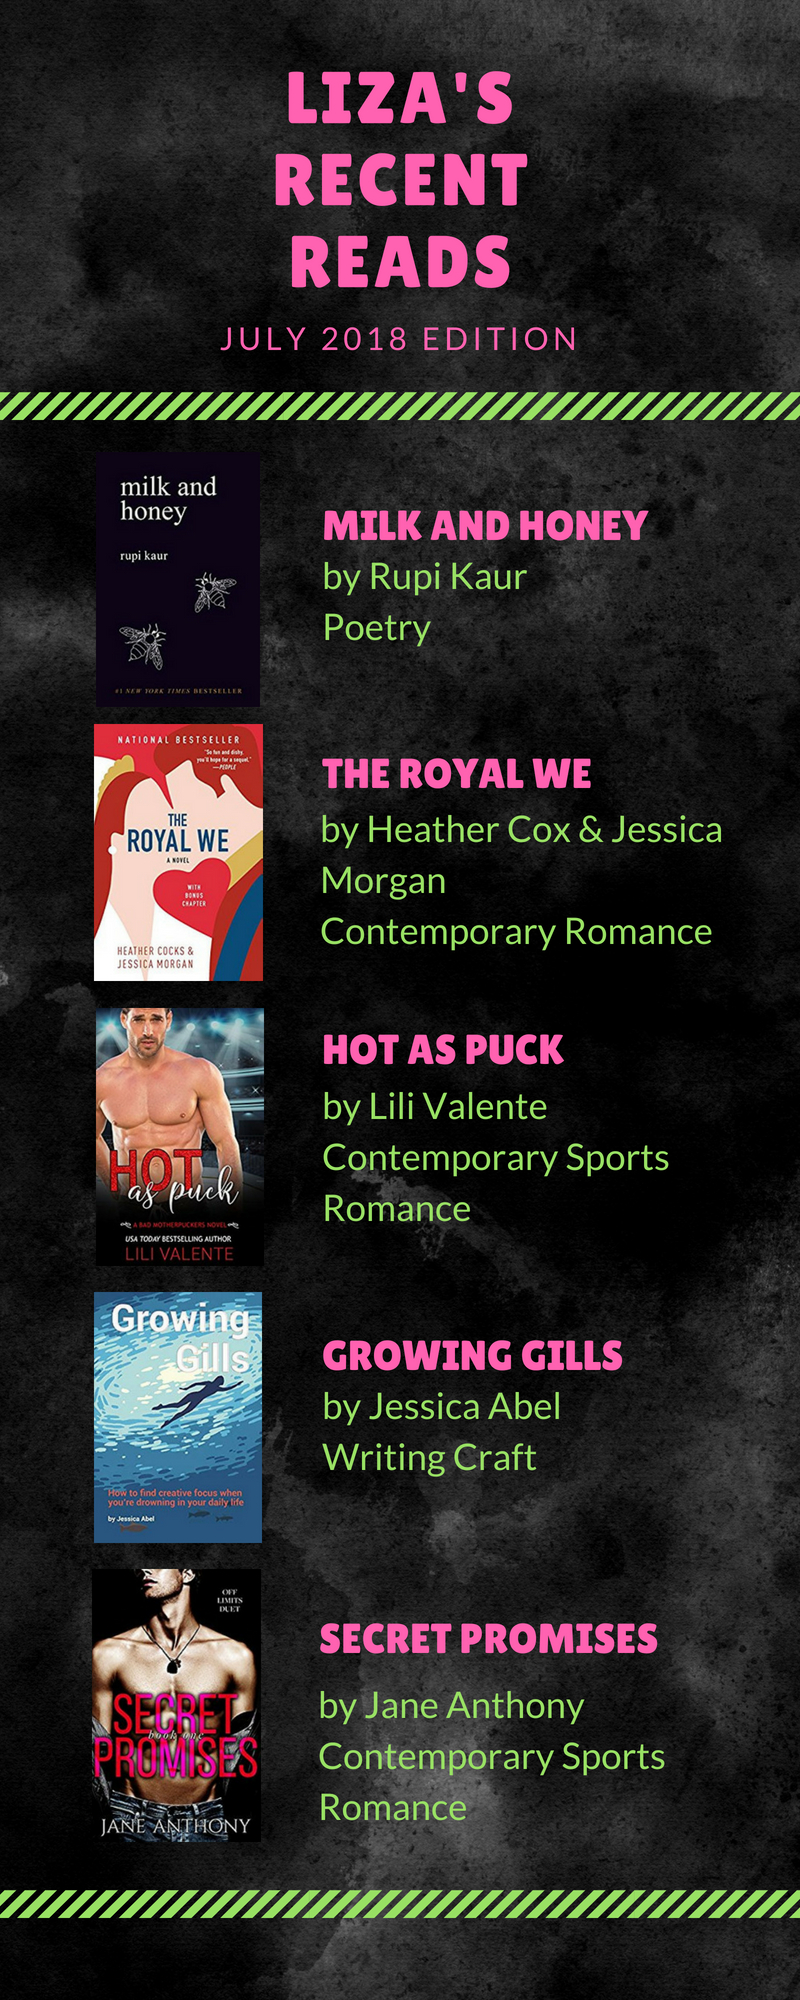 Liza's Recent Reads July 2018